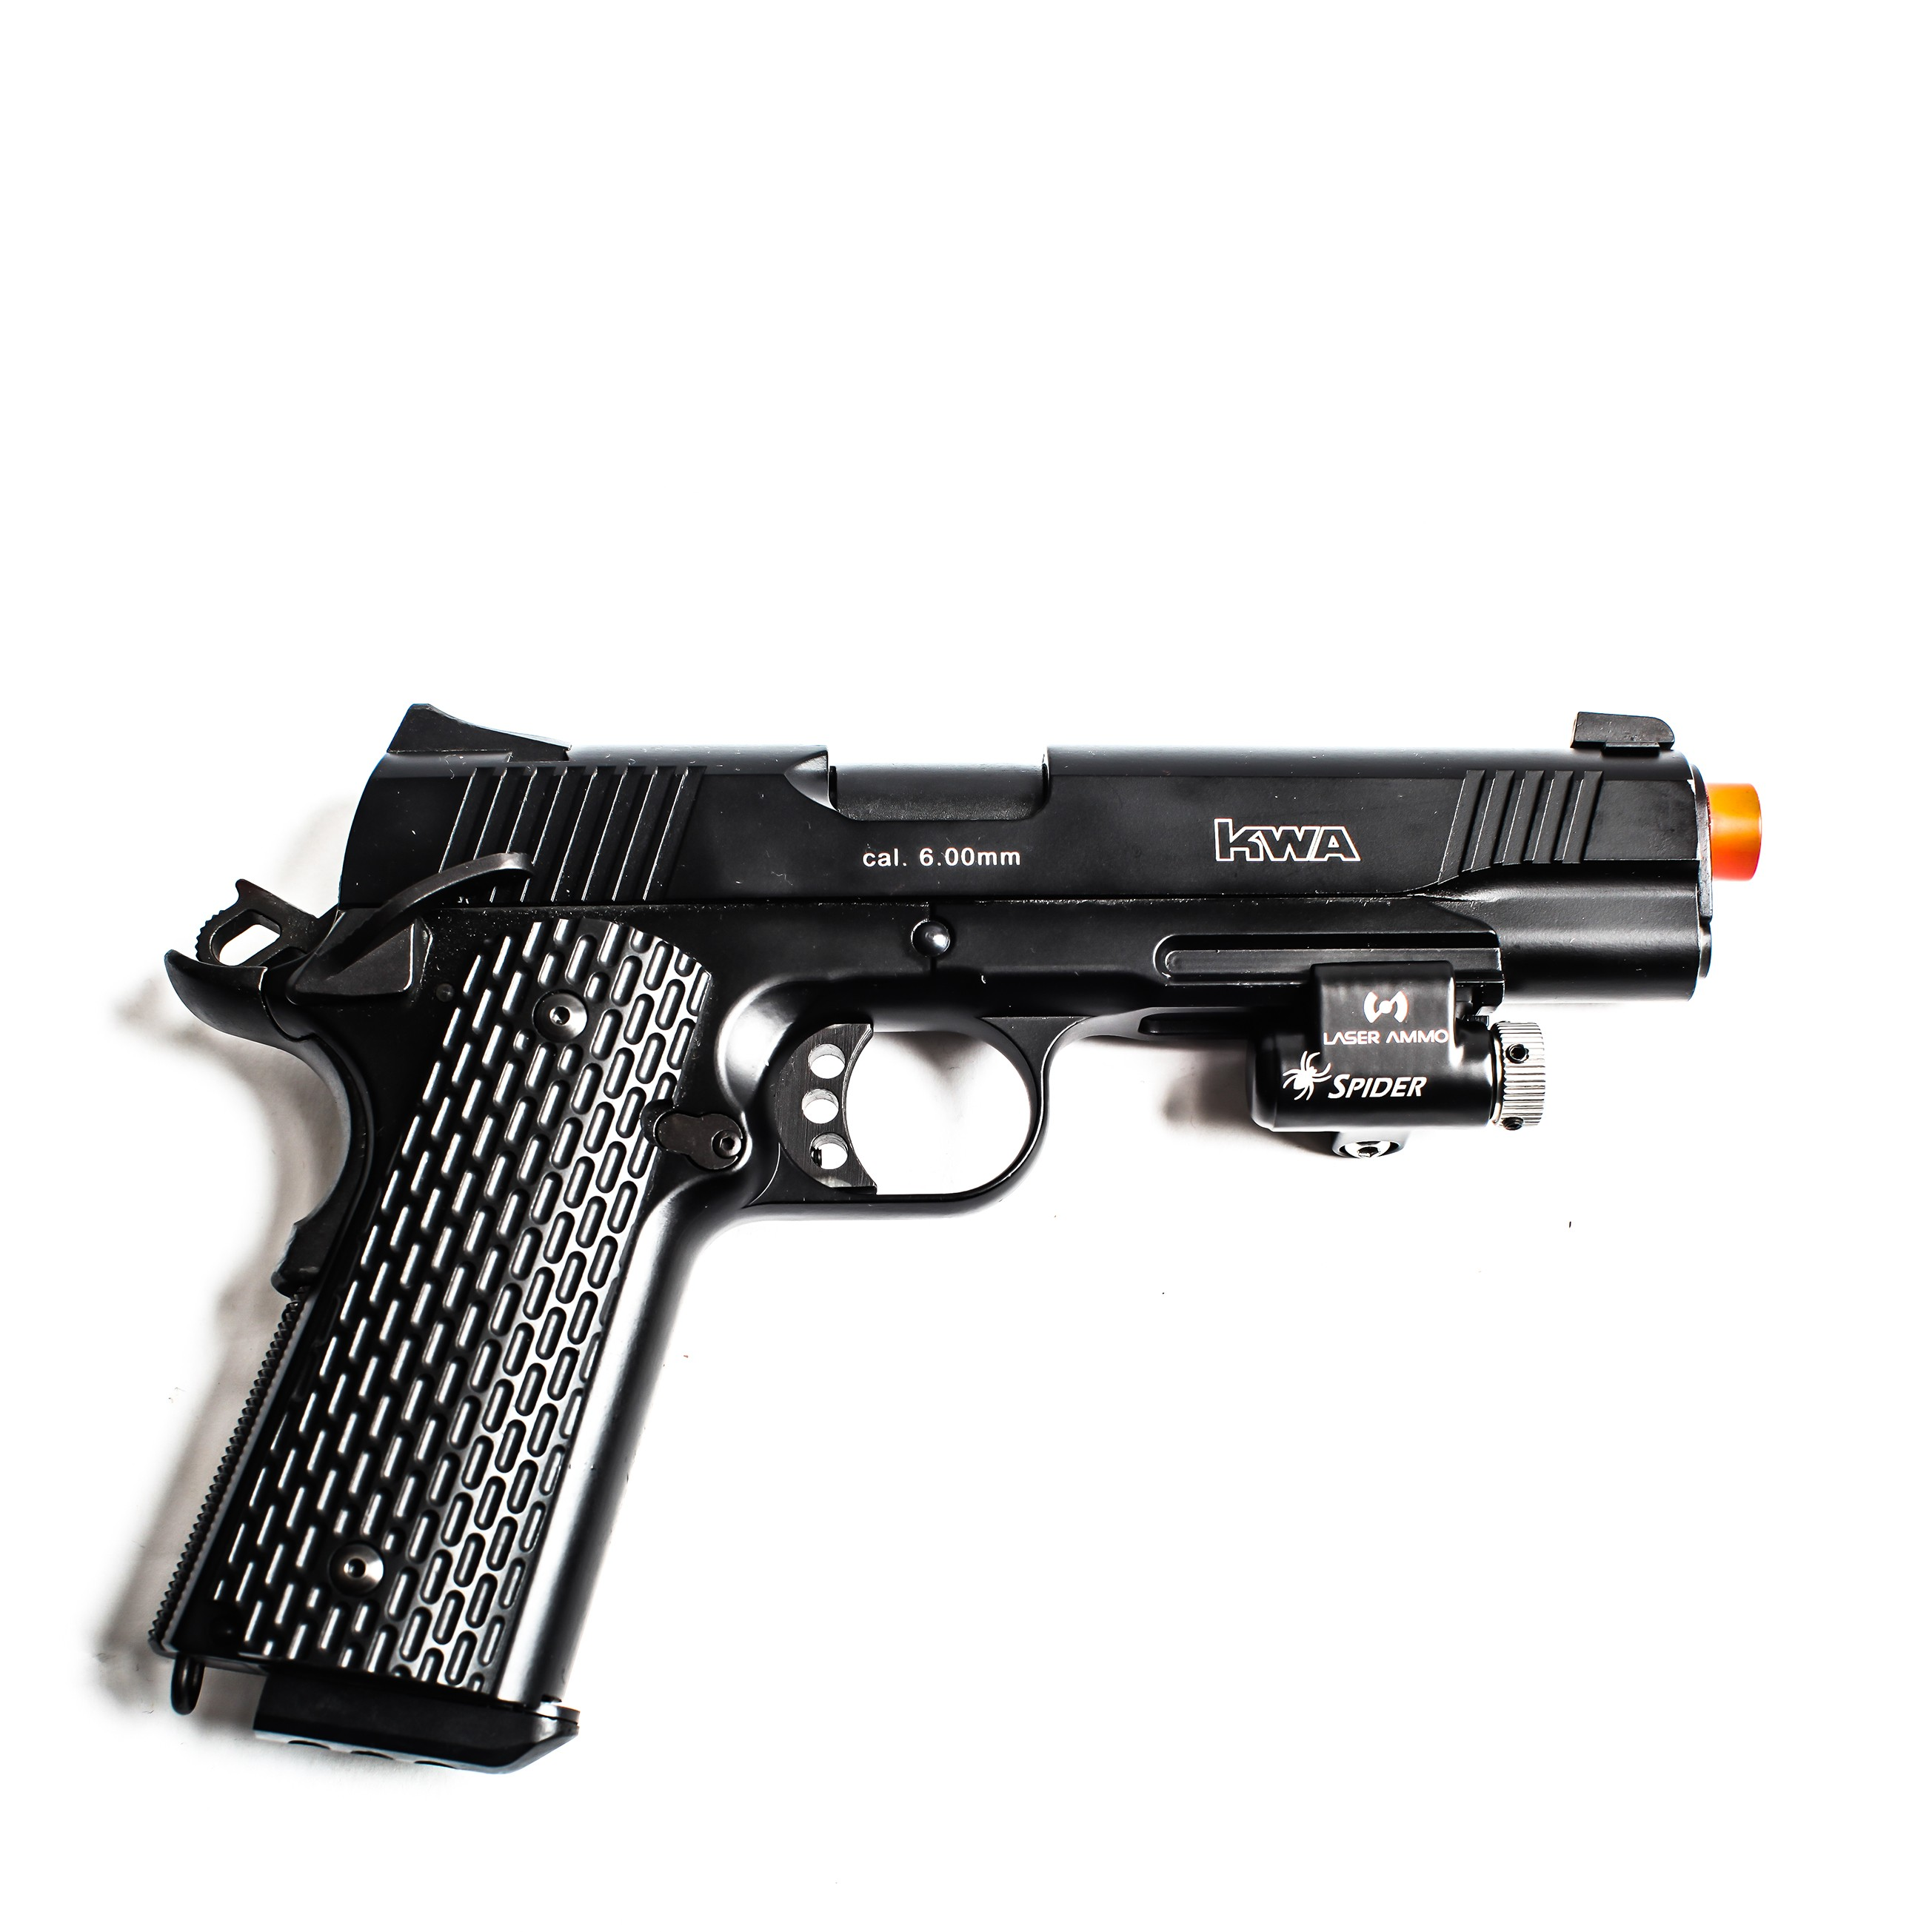 Recoil Enabled Training Pistol - 1911